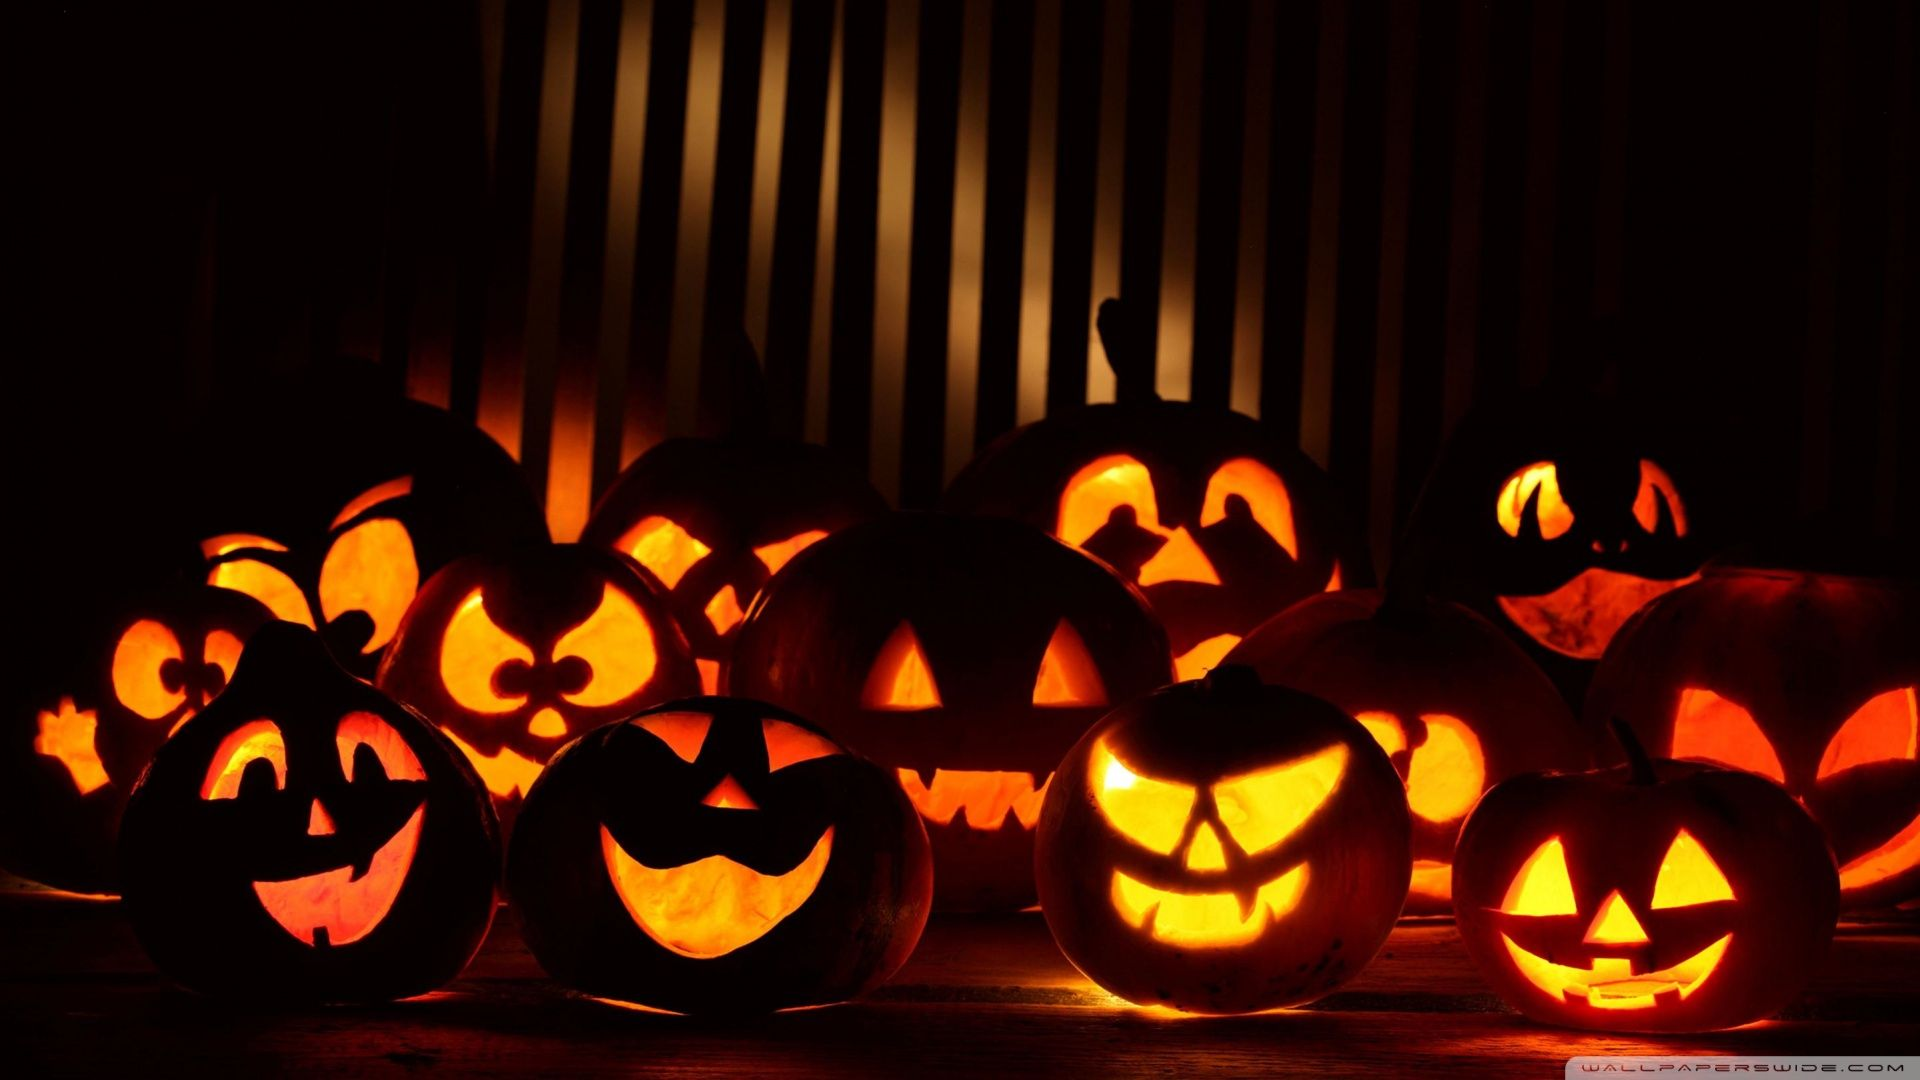 Download 50 Cute And Happy Halloween Wallpapers Hd For Free Halloween Images Pumpkin Wallpaper Halloween Pumpkins Carvings